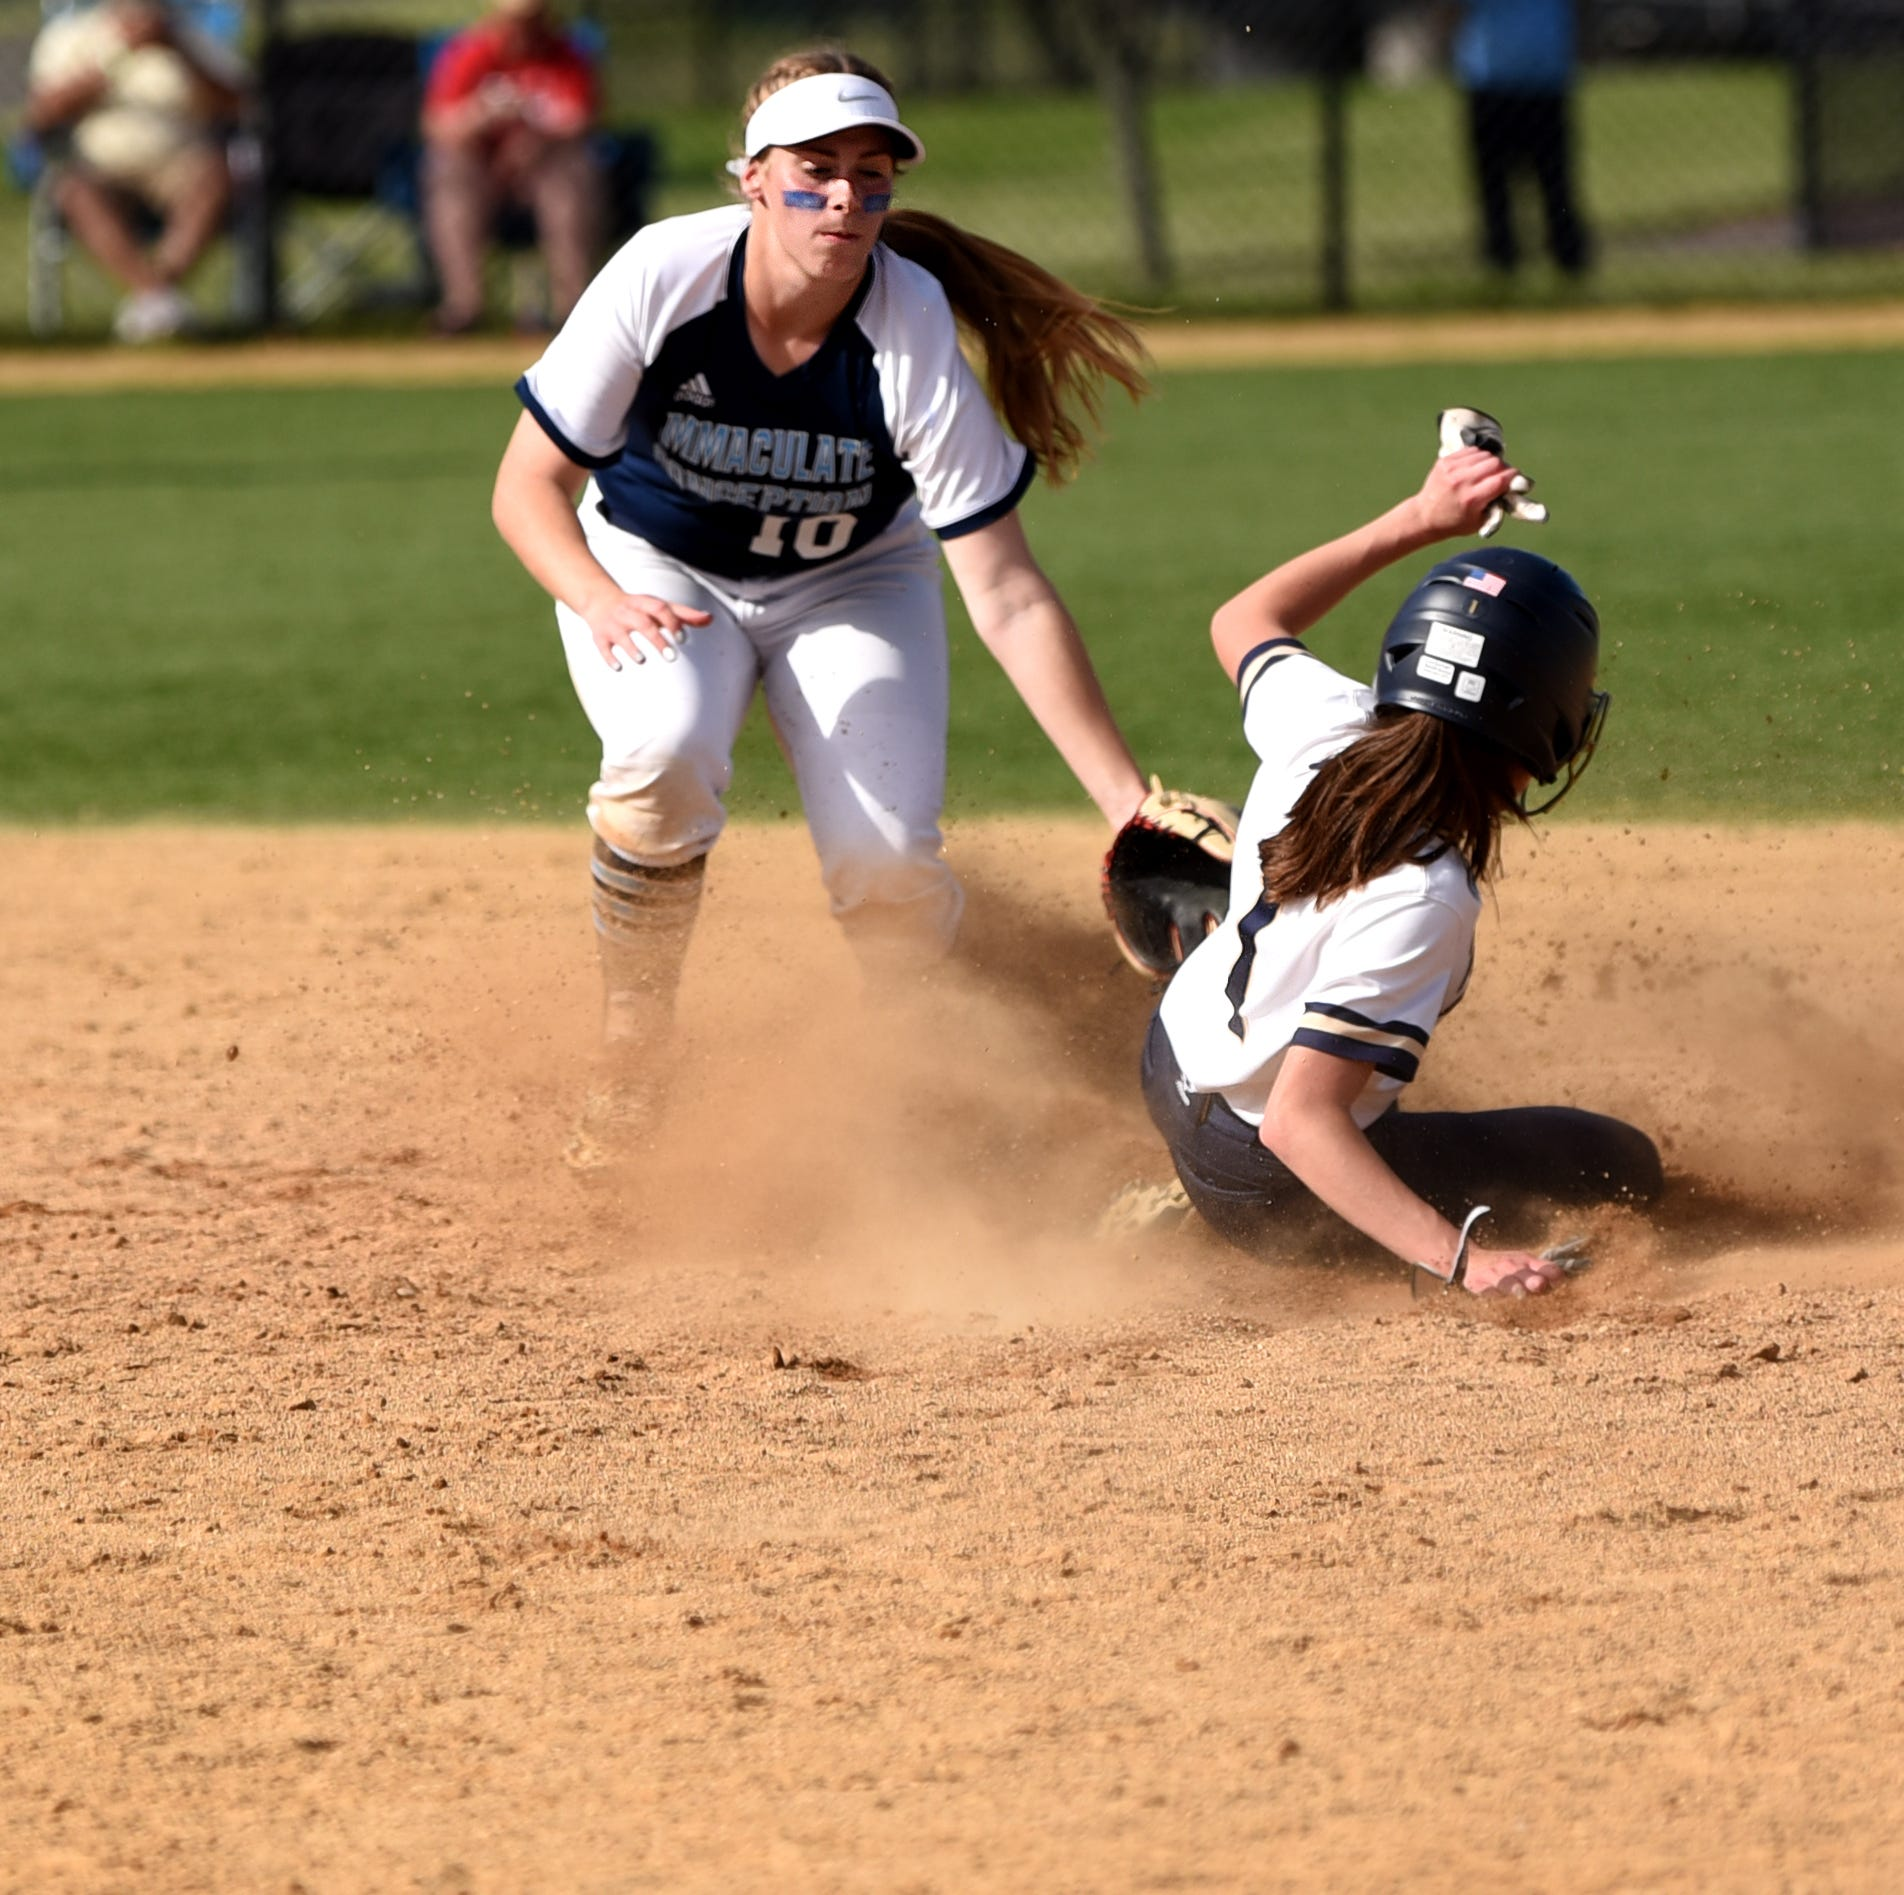 Softball: Ramsey and NV/Old Tappan to meet for Bergen County title